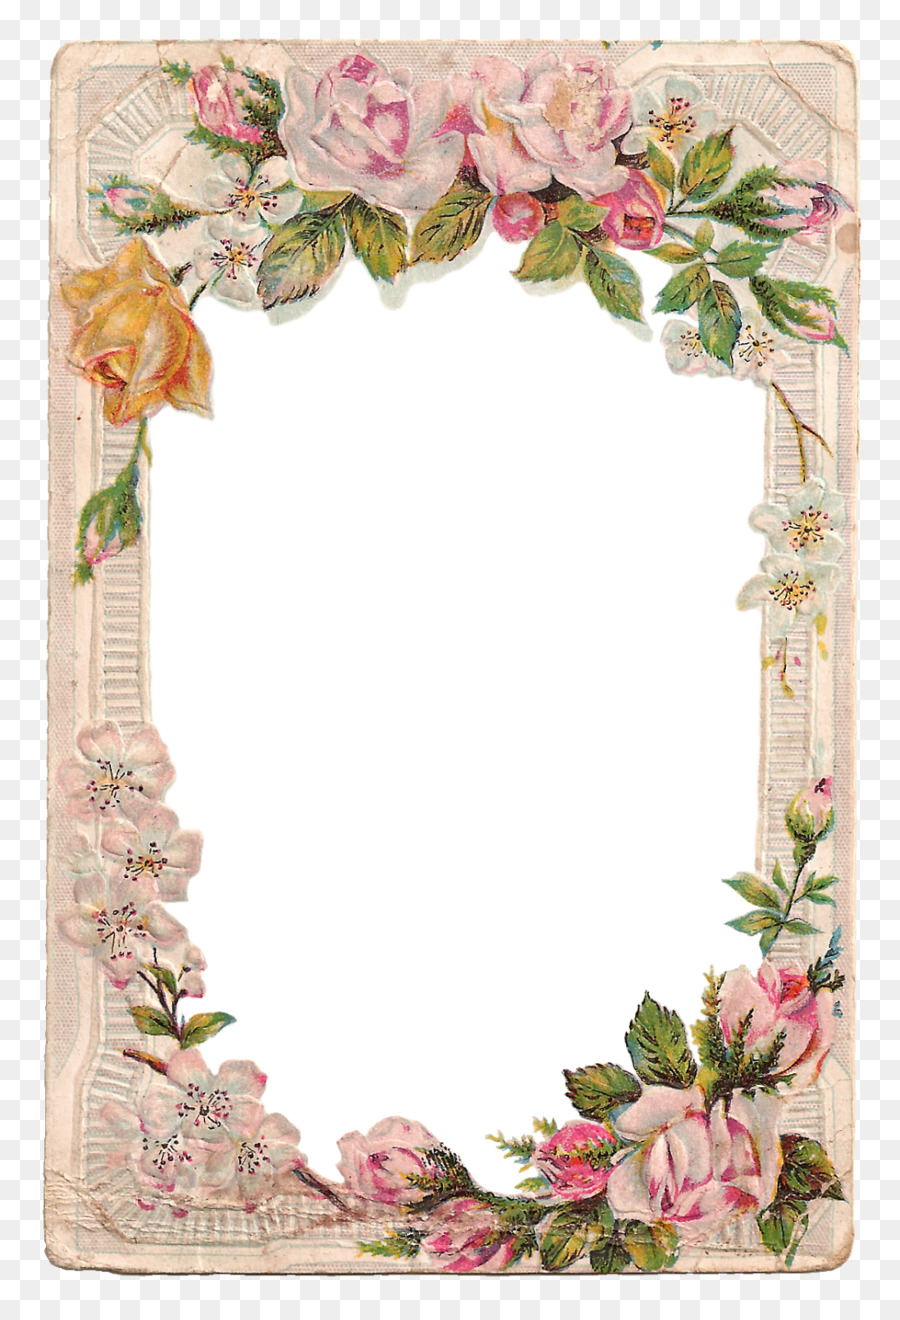 Borders and Frames Picture Frames Rose Flower Clip art - floral ...